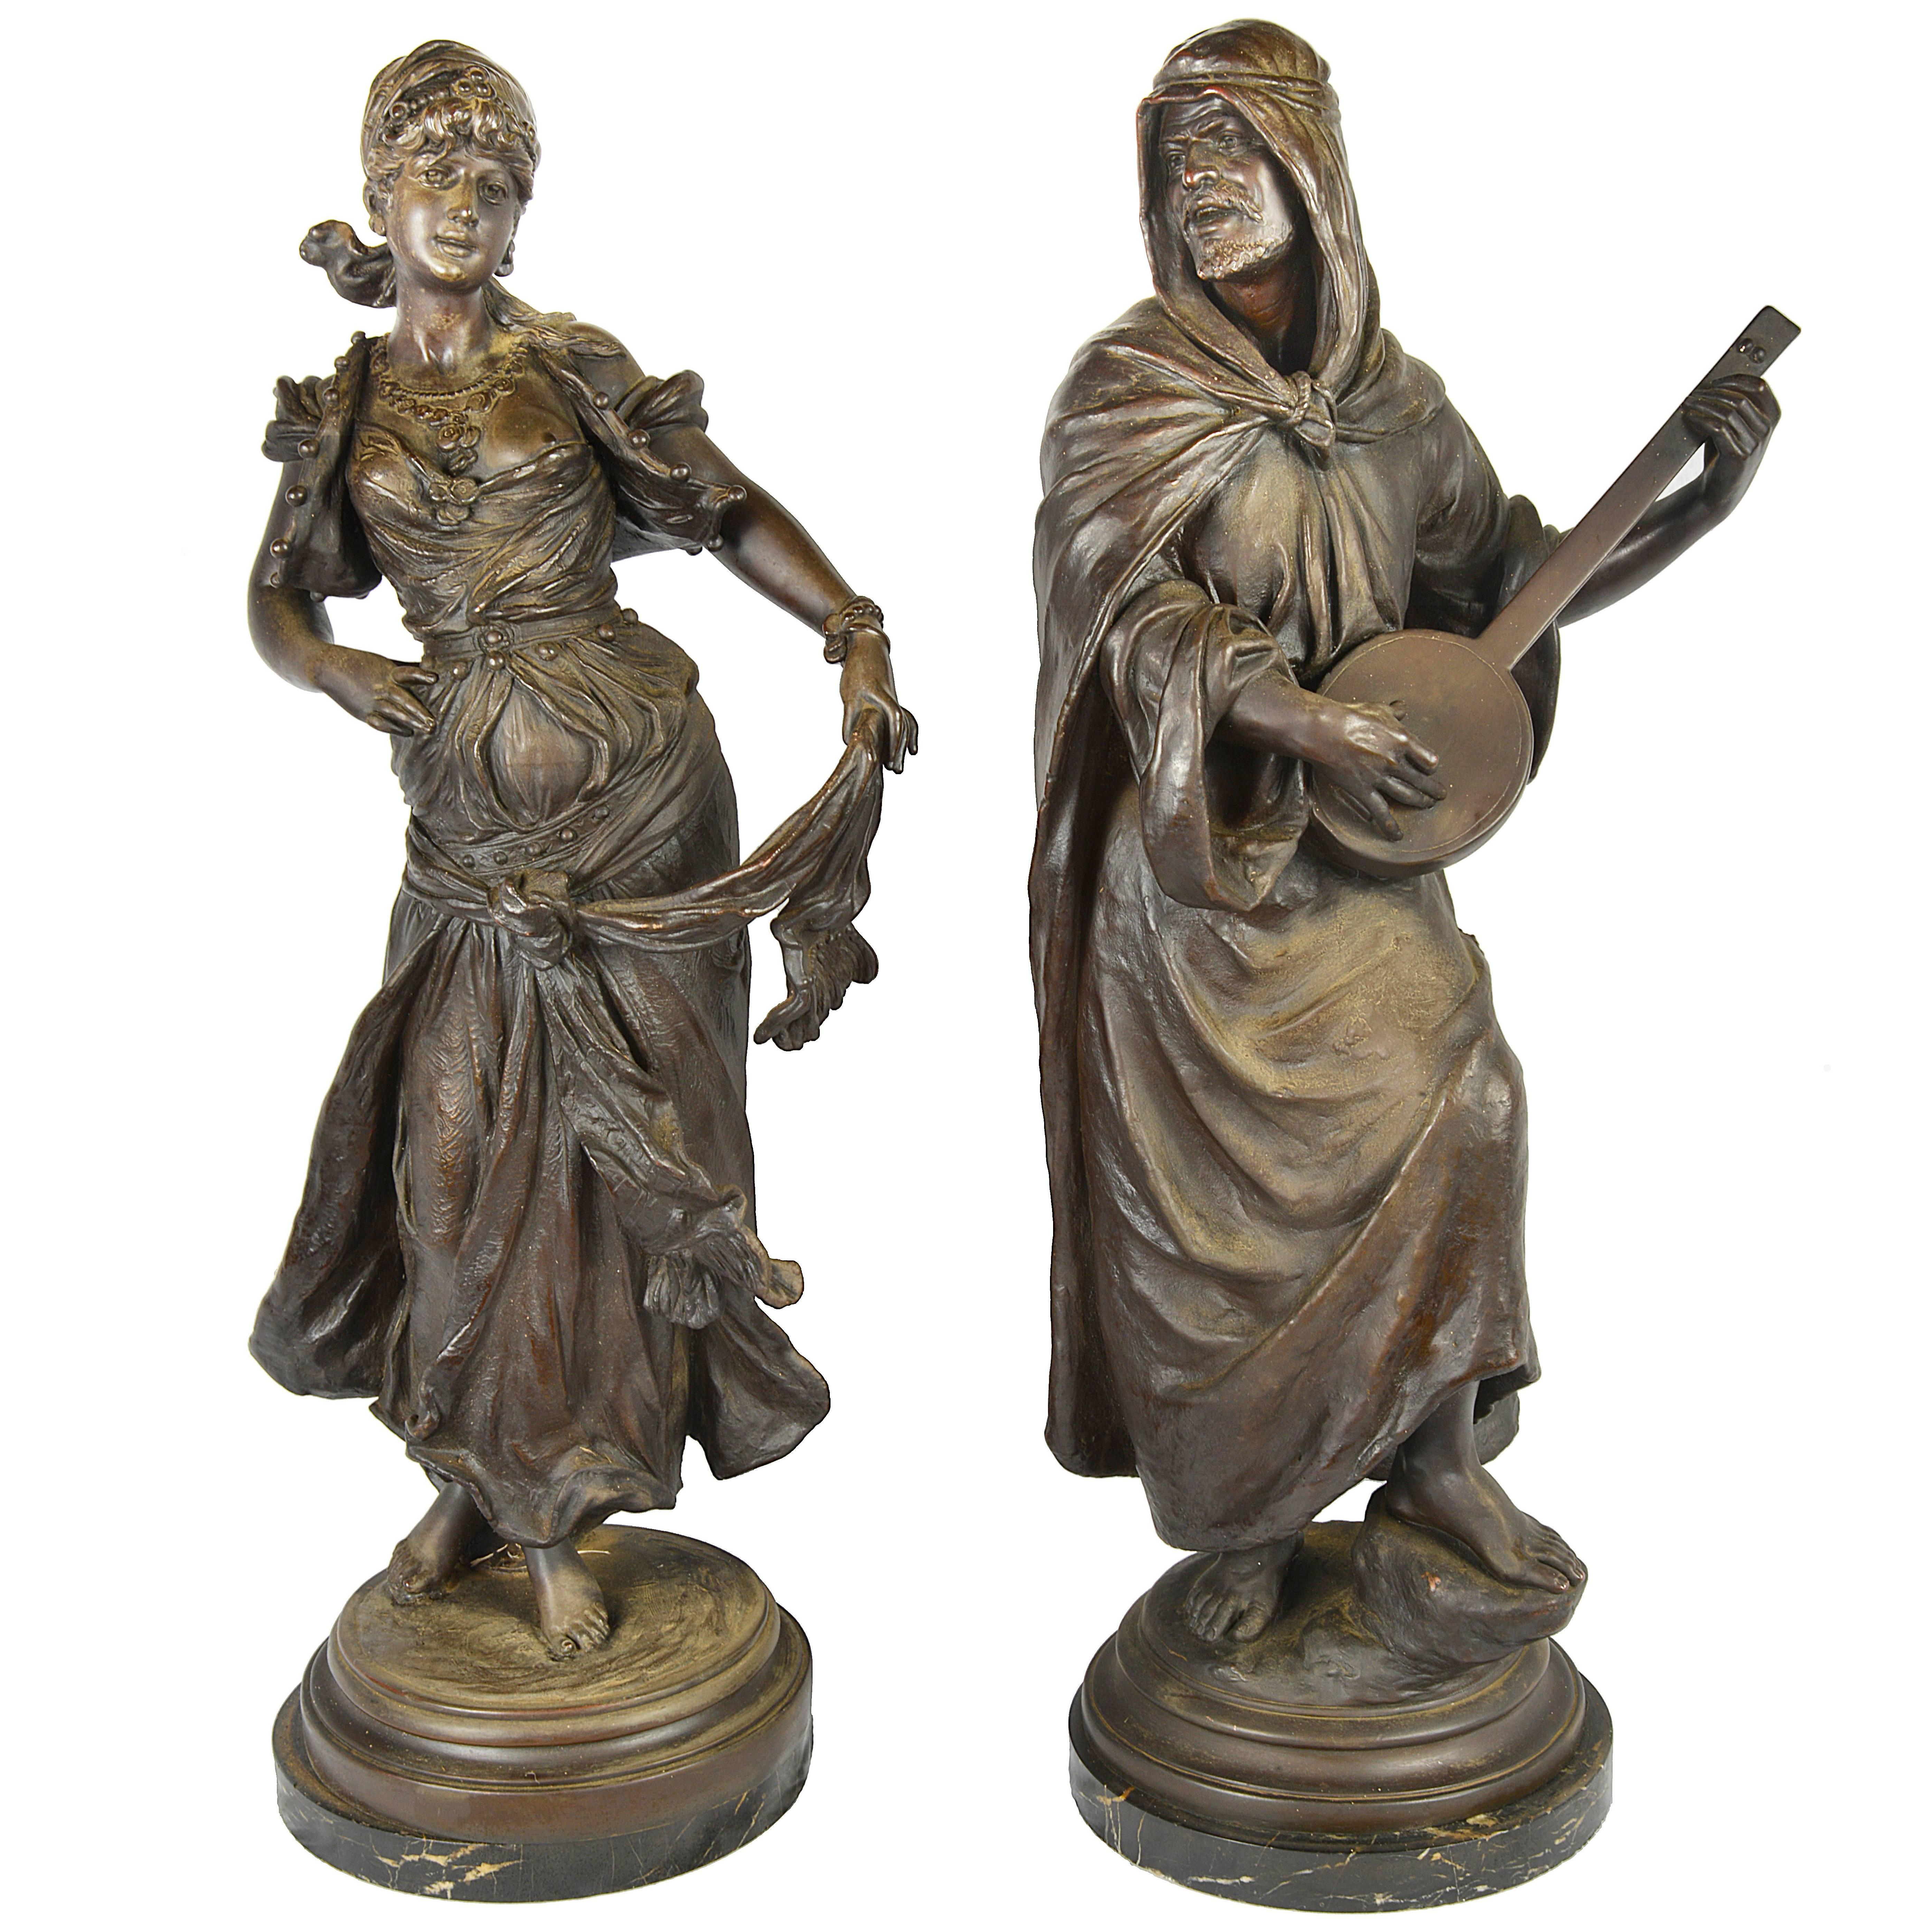 Pair of 19th Century French Bronzed Figures of Arabs